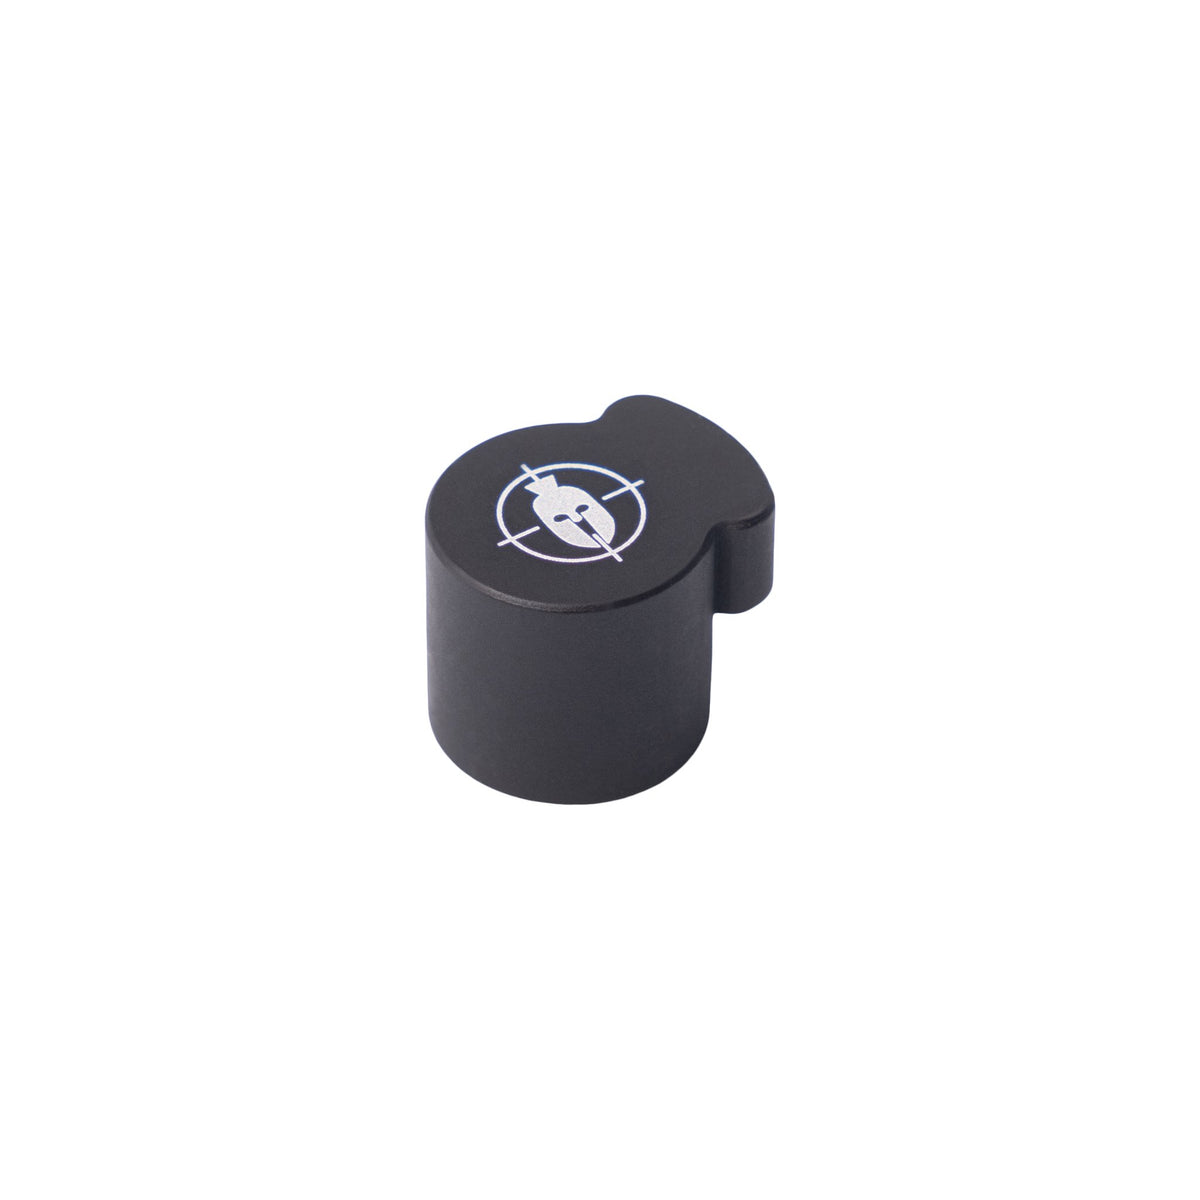 Adapter Dirt Plug - Spartan 12mm (pack of 3)